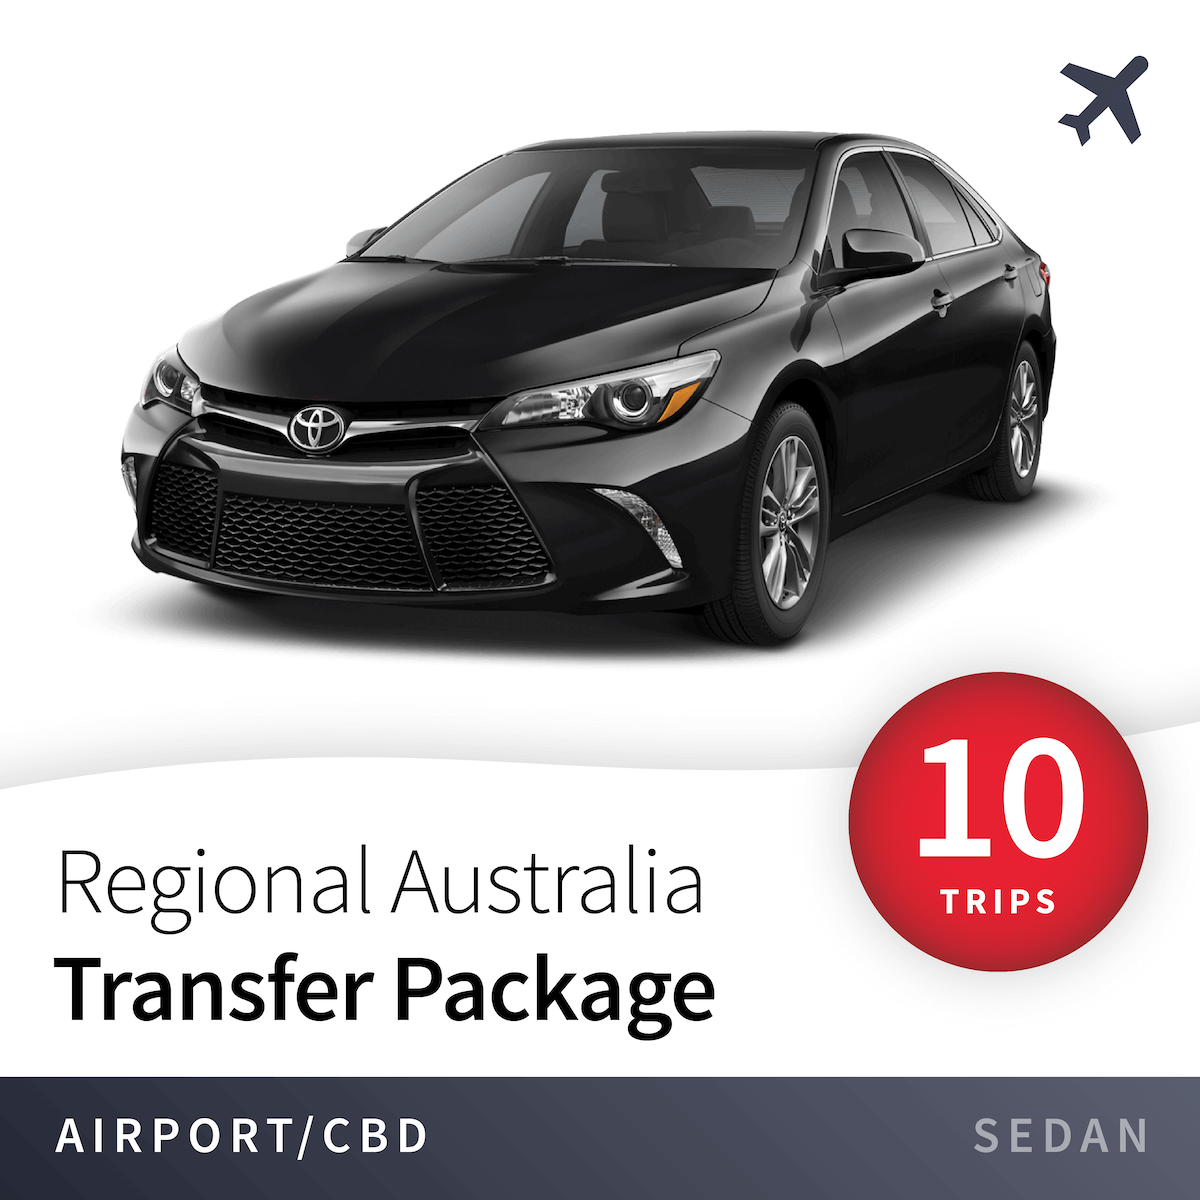 Regional Airport Transfer Package - Sedan (10 Trips) 15